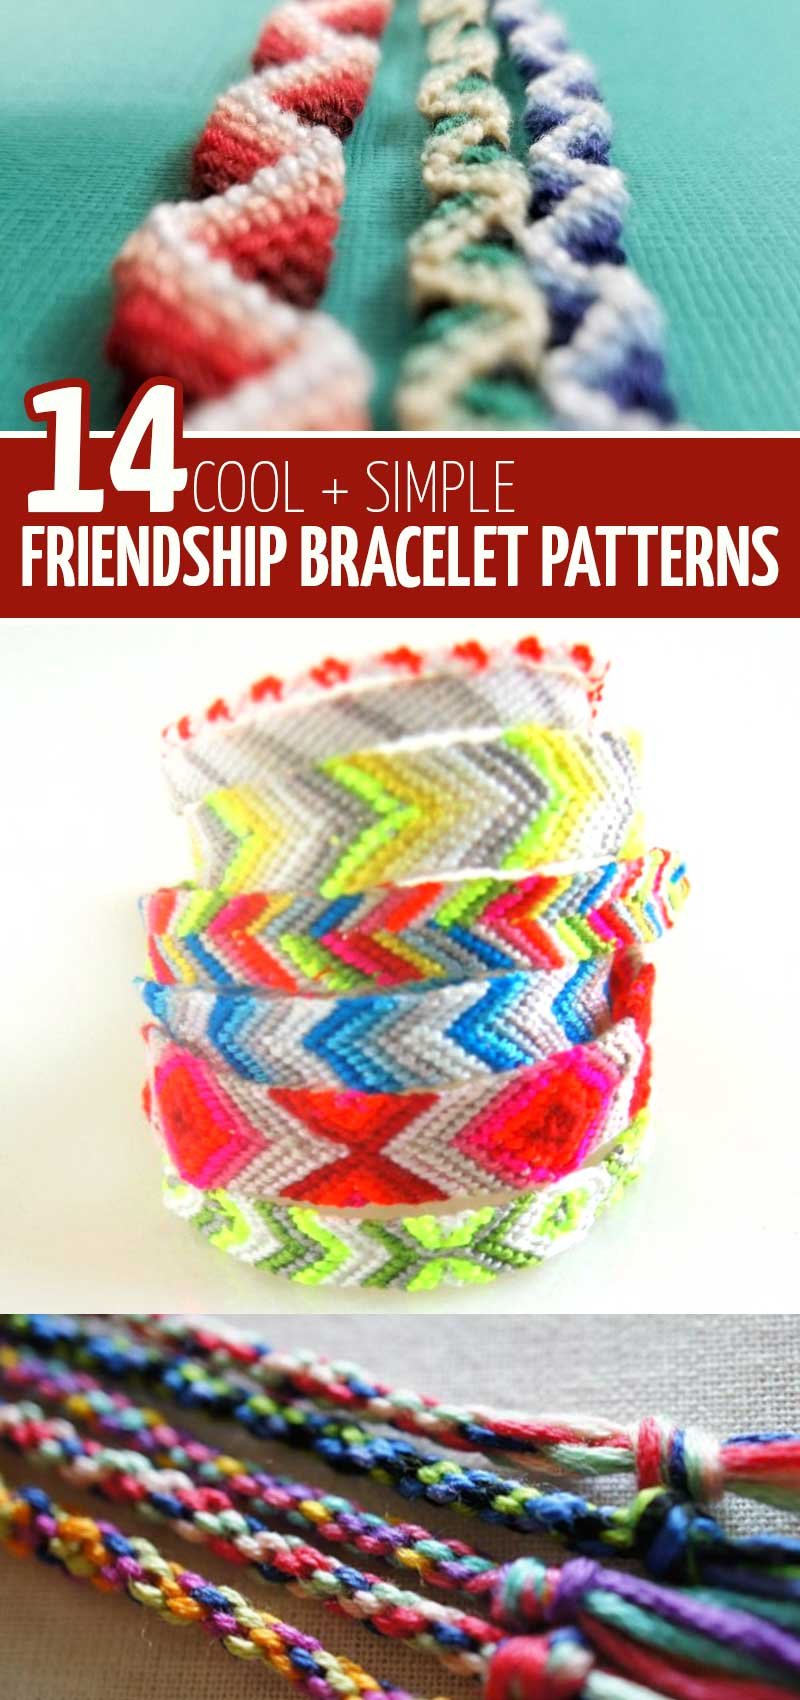 Click to find 14 cool diy friendship bracelets patterns and tutorials for teens, tweens, and adults, beginner and advanced, knotting and macrame bracelet tutorials and how to make friendship bracelet with beads and more unique materials